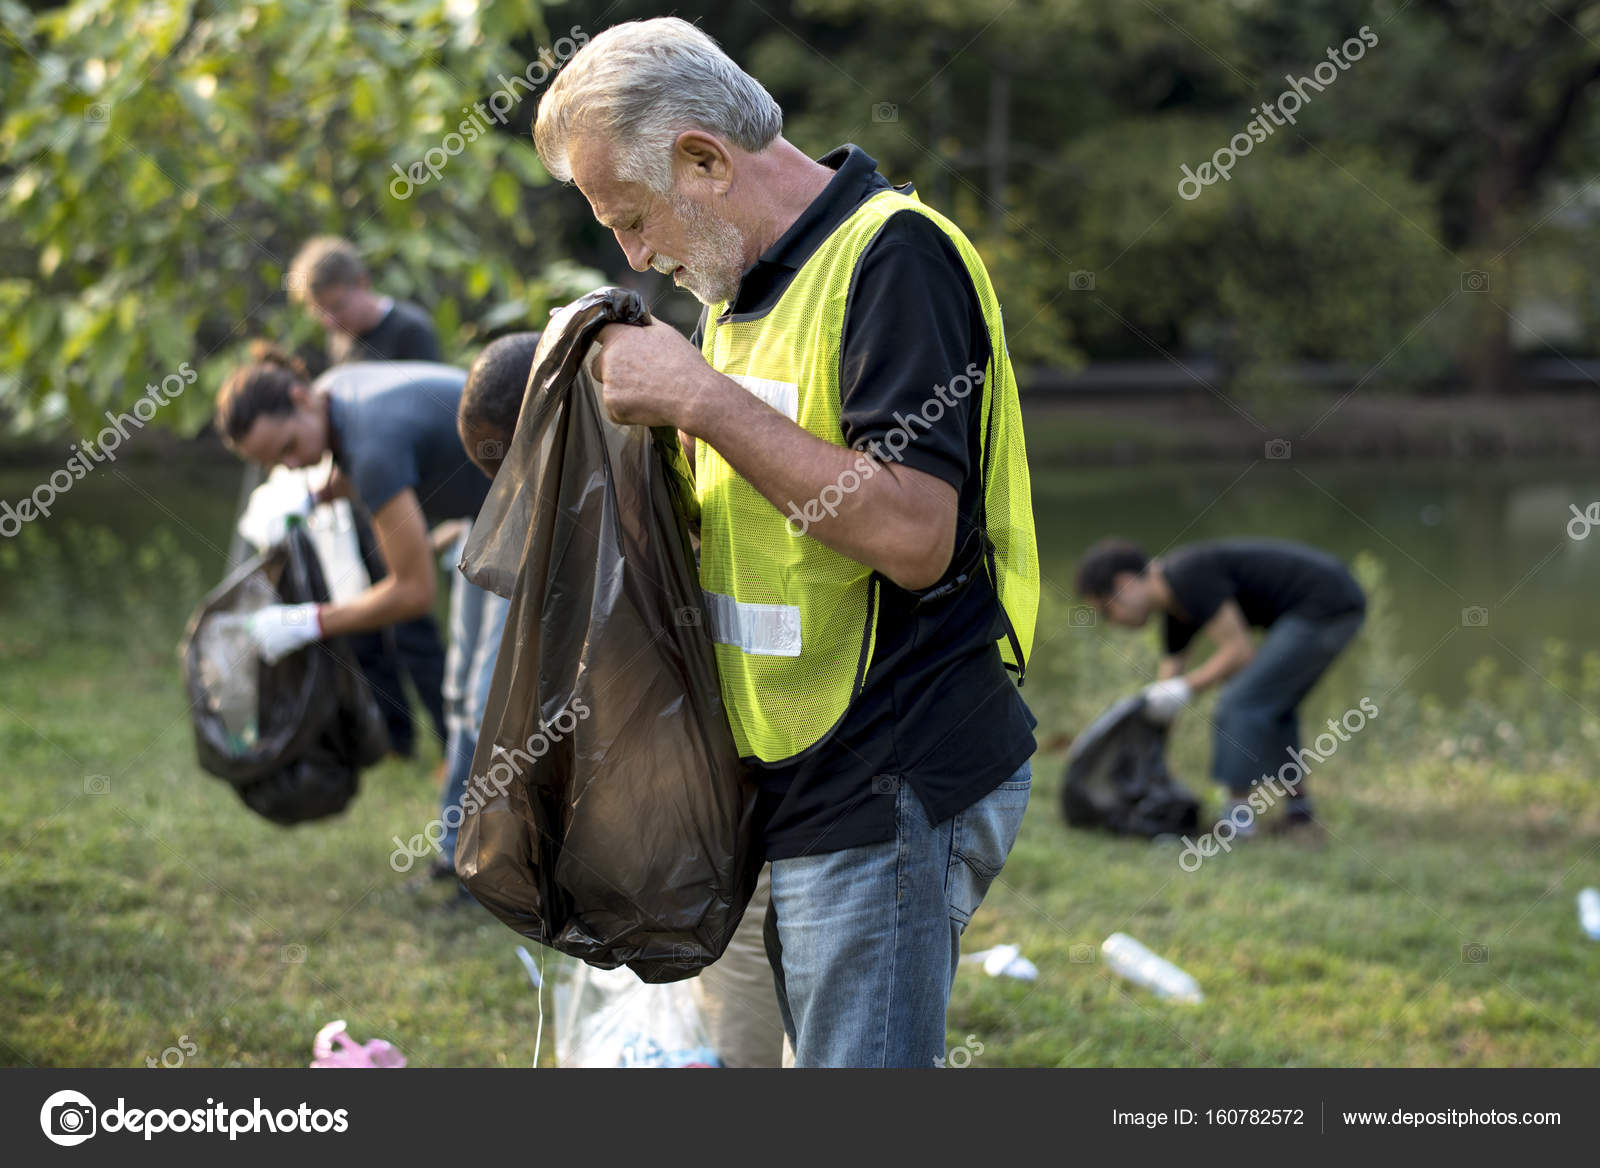 Friendly Diverse Volunteers Pick Up Trash In Local Park Stock Photo